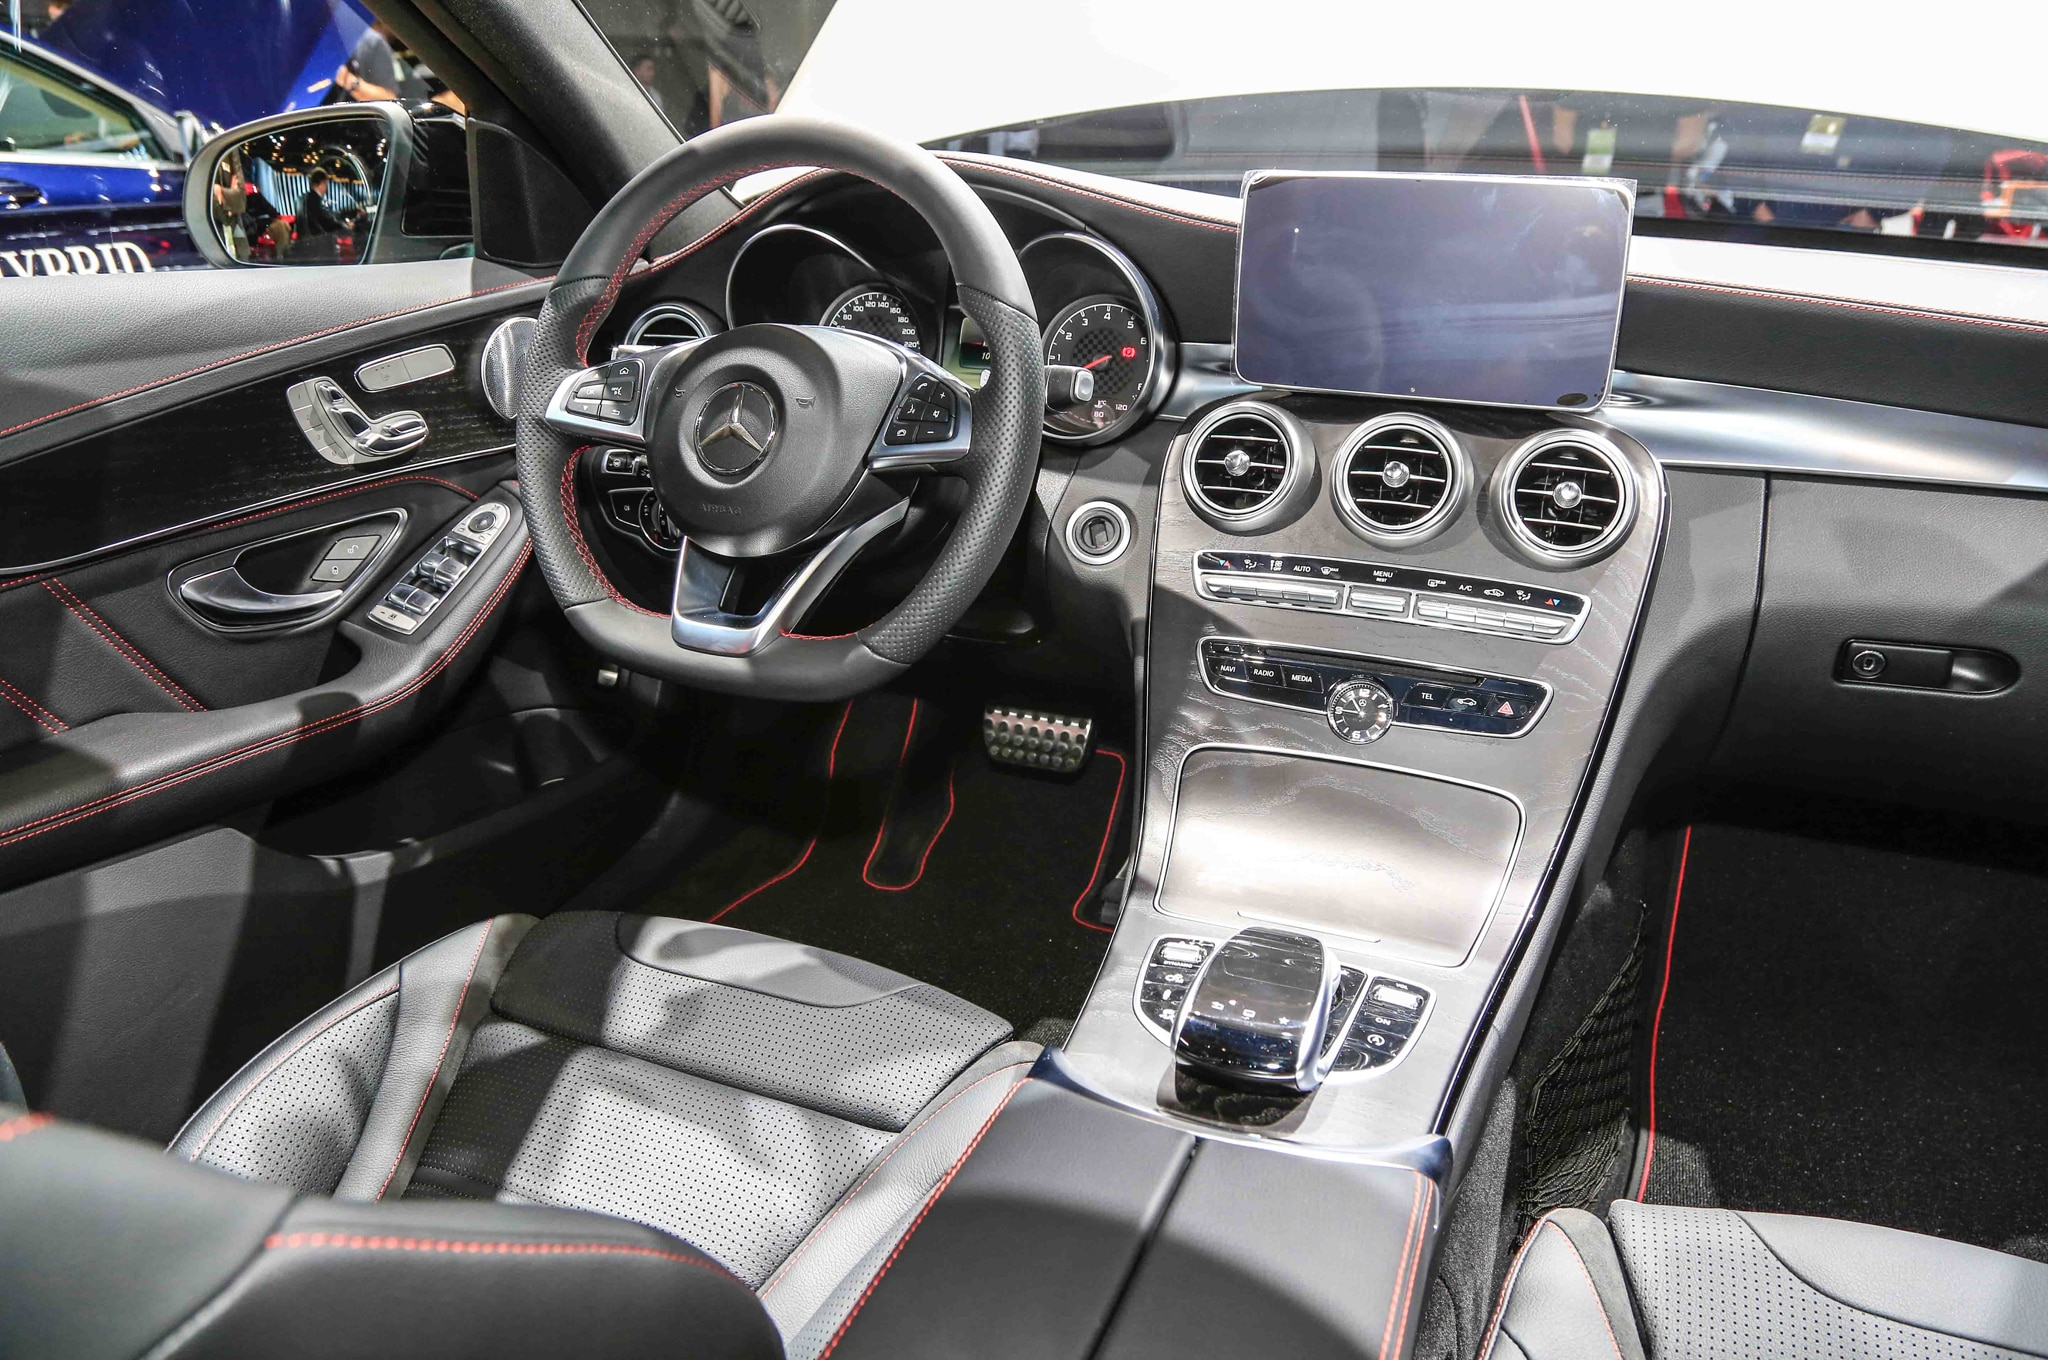 https://st.automobilemag.com/uploads/sites/11/2015/01/2016-Mercedes-Benz-C450-AMG-4Matic-interior.jpg